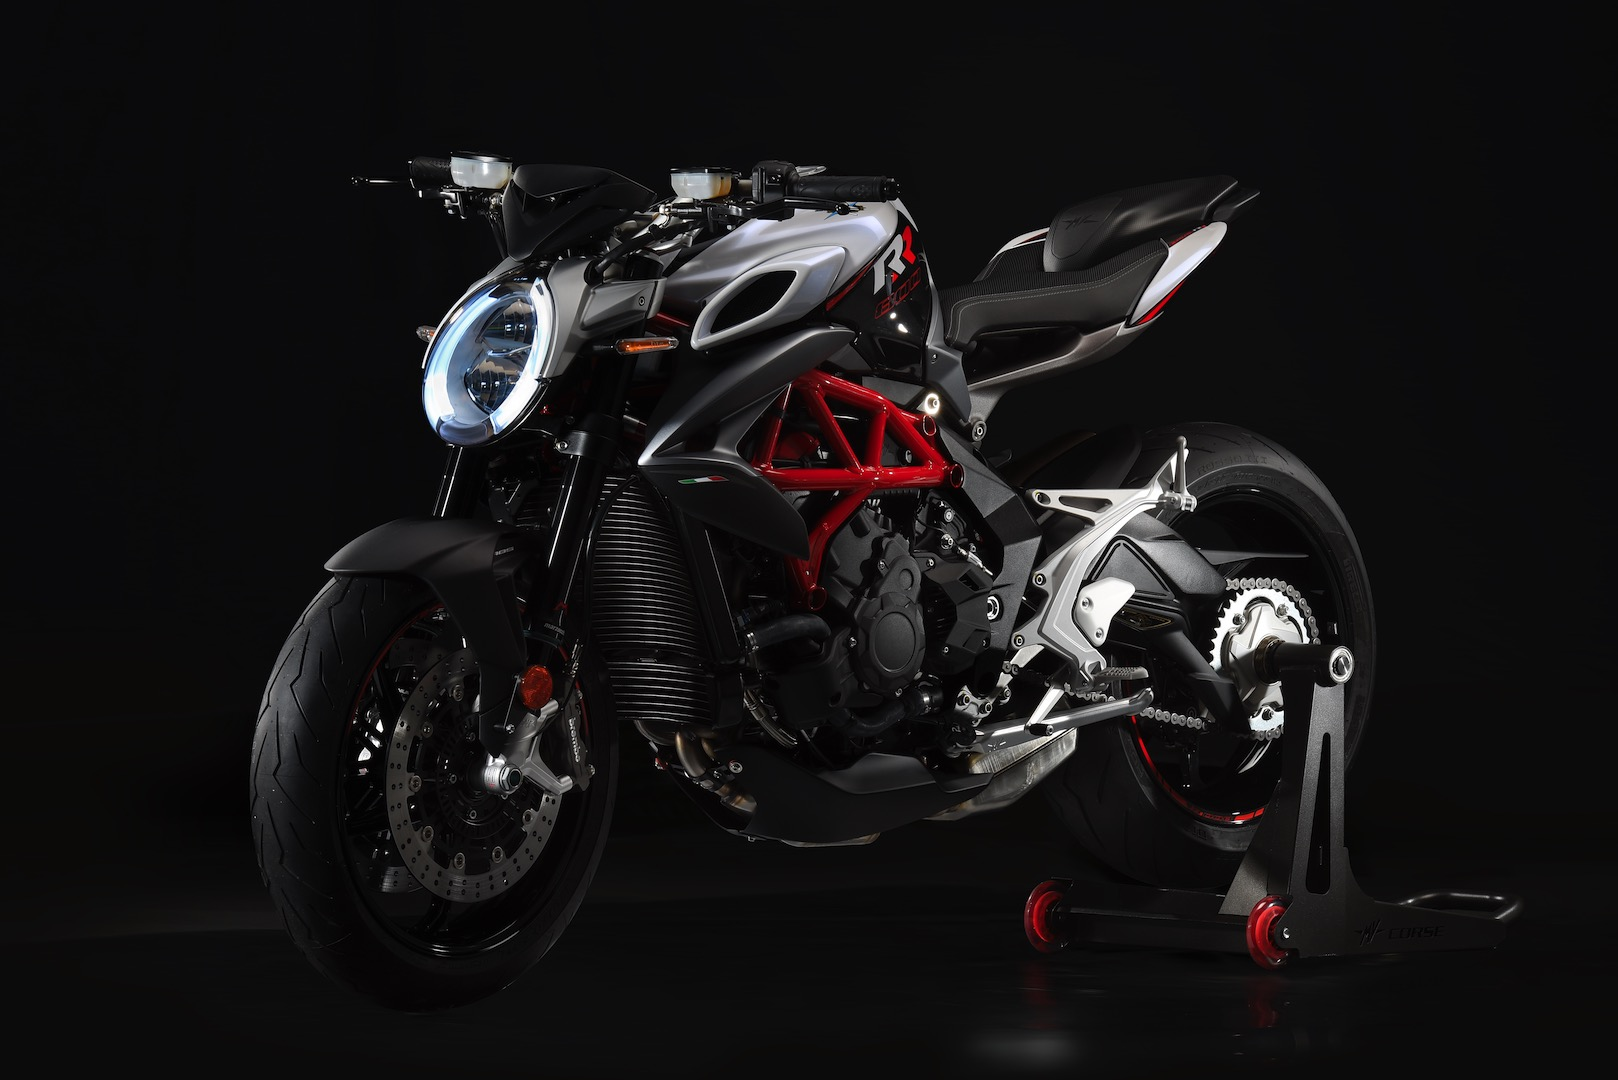 2018 Mv Agusta Brutale 800 Rr Test In Italy And Switzerland